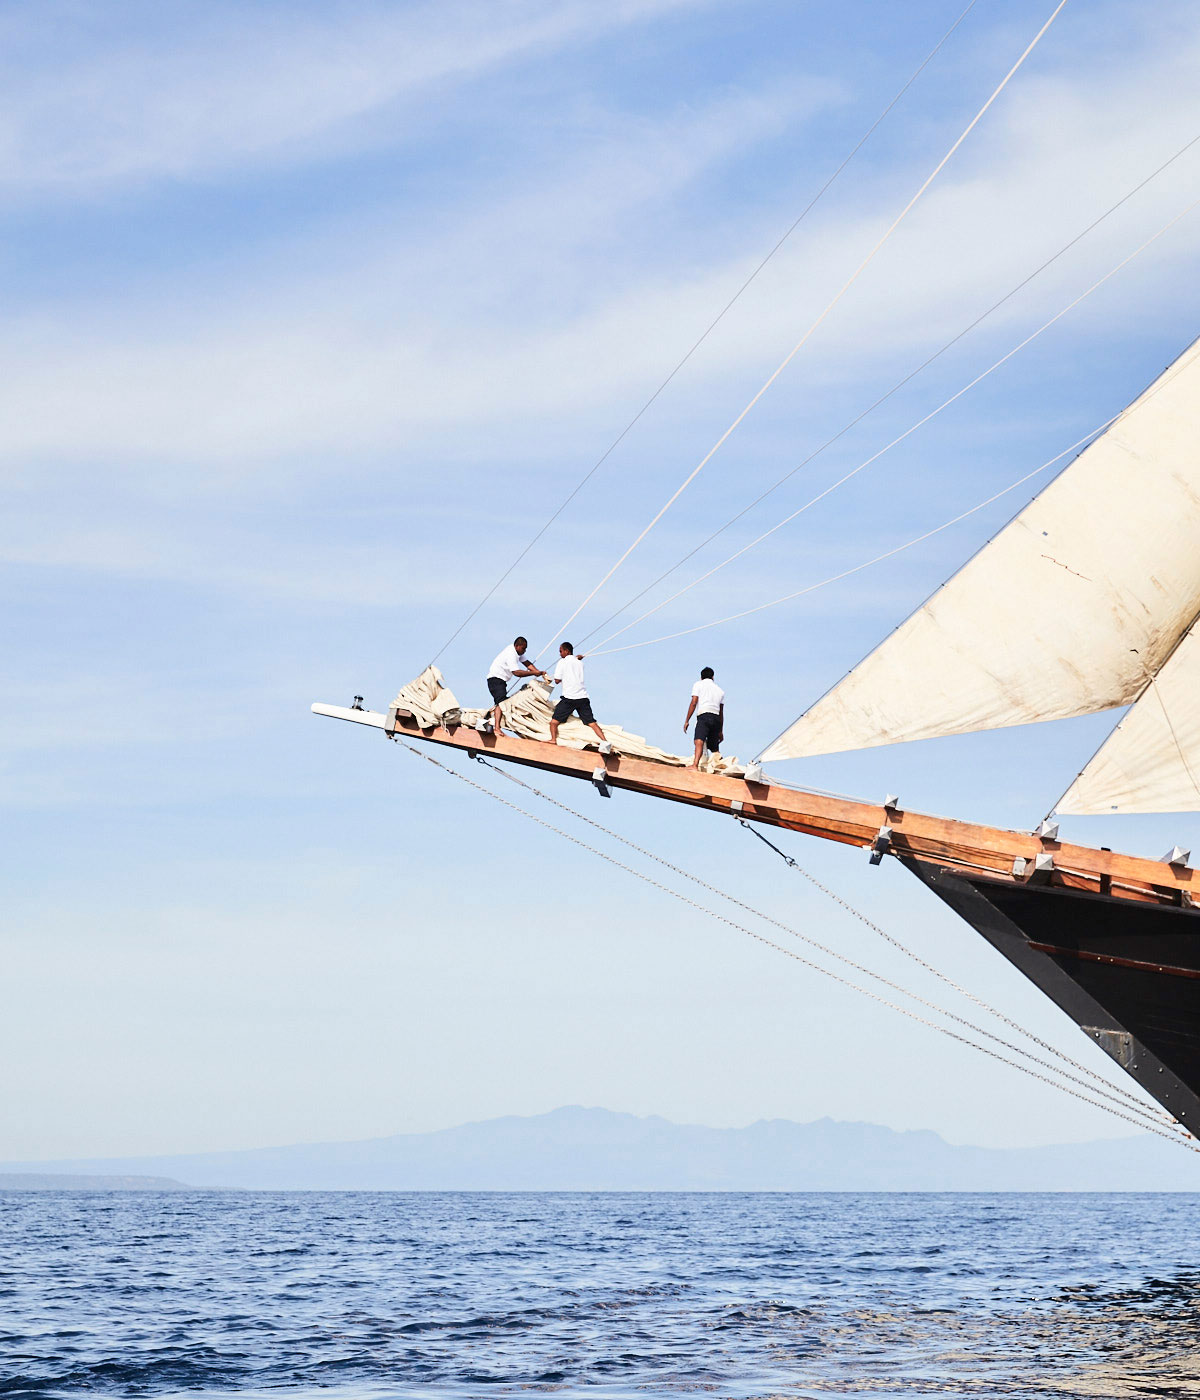 Amandira crew taking down the sails